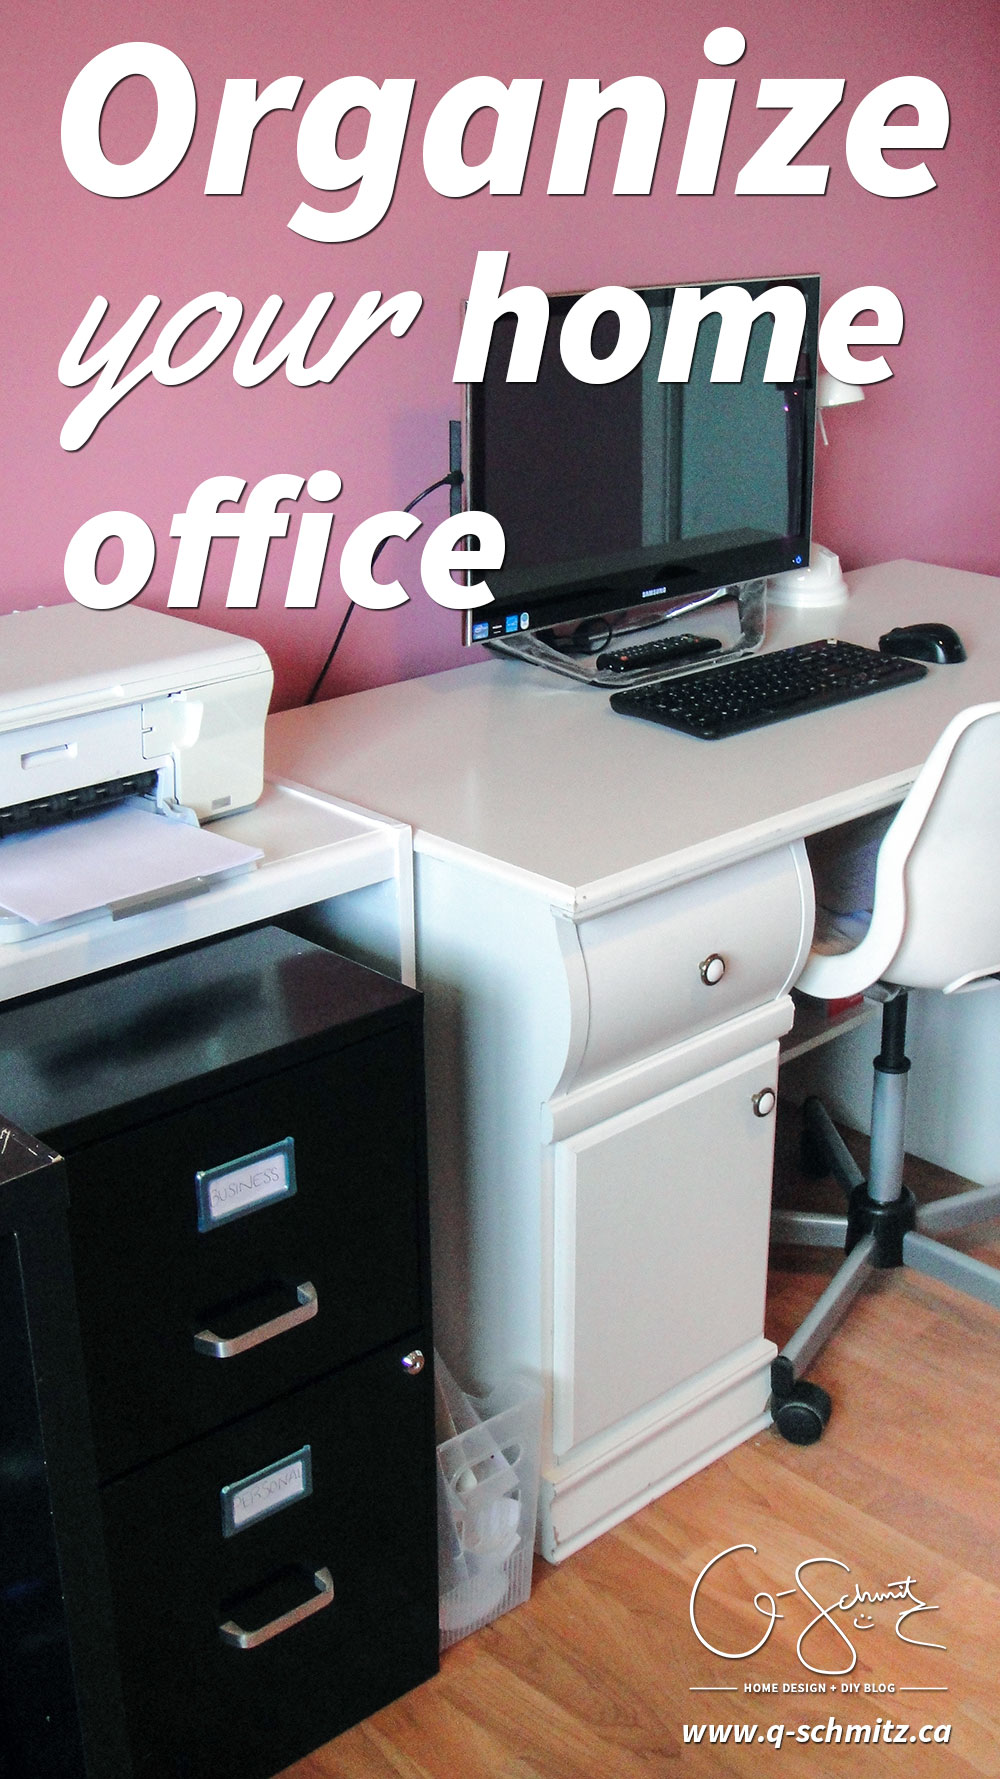 Do you struggle with filing your paperwork? Properly cleaning and organizing the home office right now is the best way to keep up with your paperwork in the future! Whether your home office is in a bedroom, a designated space in your kitchen, or even a closet, read this post to see how your organization could get bottlenecked; (and learn how to prevent it!).